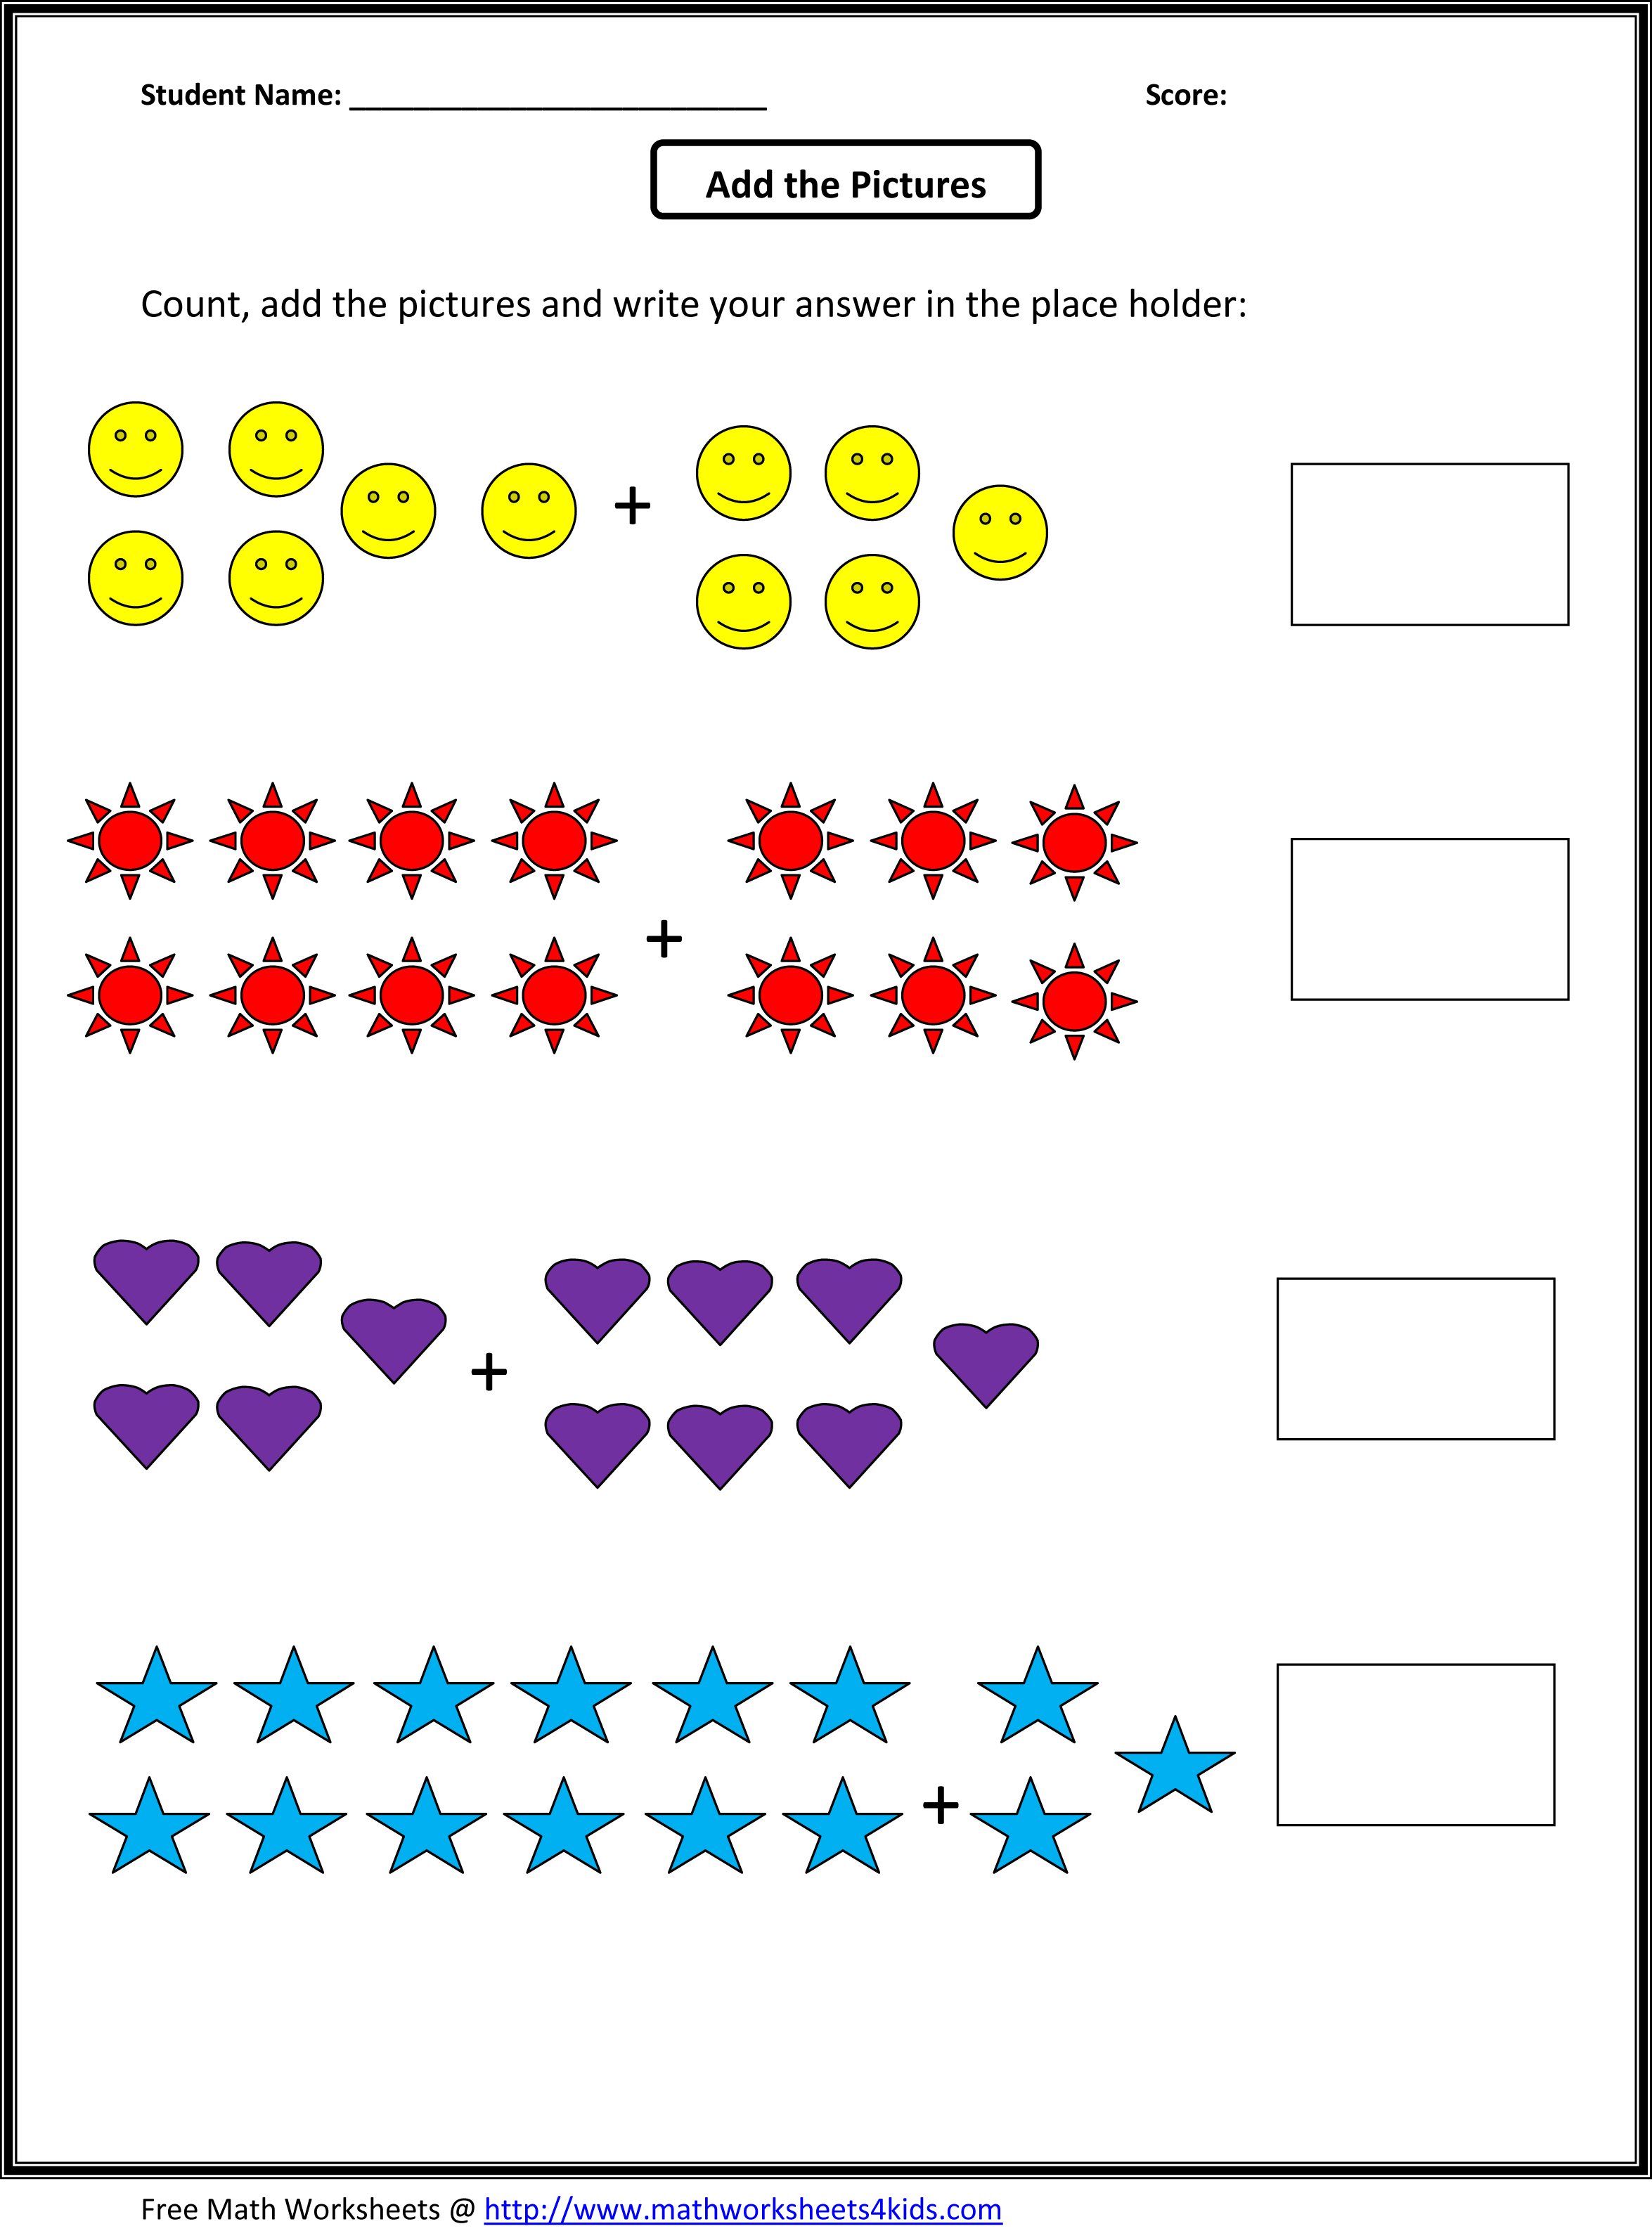 Weirdmailus  Surprising Grade  Maths Worksheet  Reocurent With Fascinating Math Worksheets For St Grade Free  Reocurent With Amazing Kindergarten Blank Writing Worksheets Also Math Worksheets To Do Online In Addition Blank Fact Family Worksheets And Th Grade Math Division Worksheets As Well As Irs Tax Worksheet Additionally Elasped Time Worksheet From Reocurentcom With Weirdmailus  Fascinating Grade  Maths Worksheet  Reocurent With Amazing Math Worksheets For St Grade Free  Reocurent And Surprising Kindergarten Blank Writing Worksheets Also Math Worksheets To Do Online In Addition Blank Fact Family Worksheets From Reocurentcom